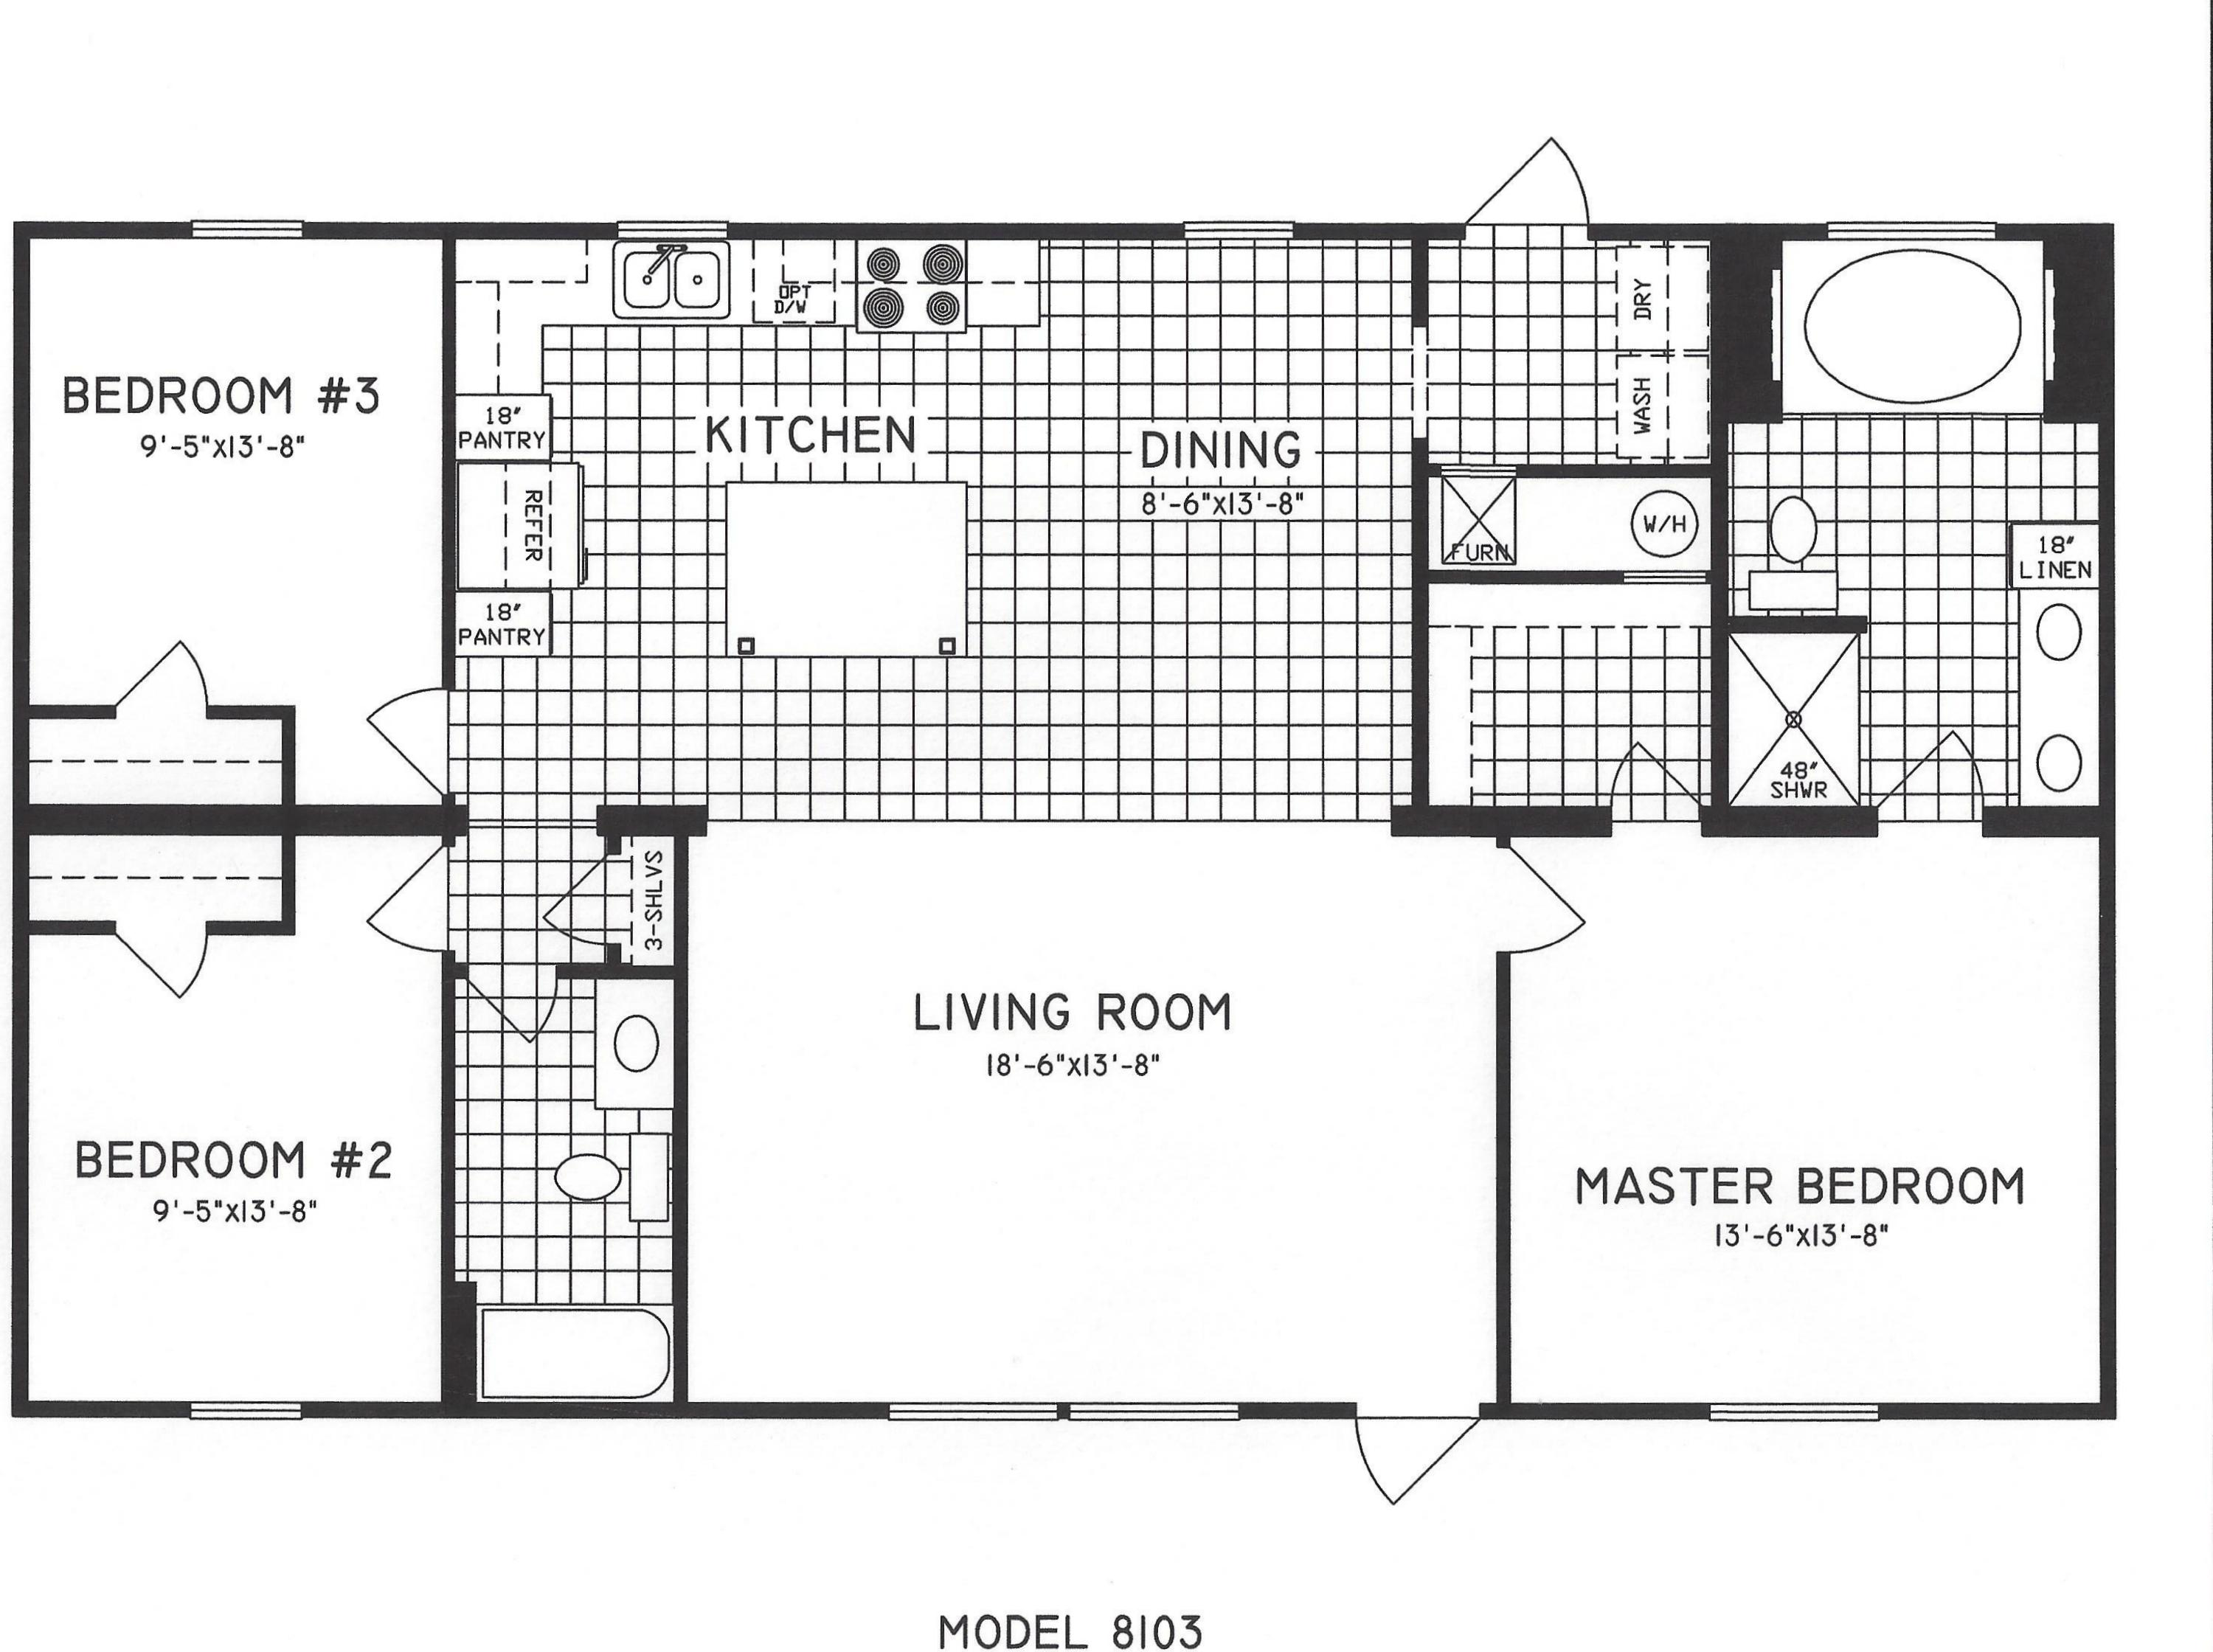 3 bedroom floor plan c 8103 hawks homes manufactured for 3 bedroom 2 bathroom floor plans